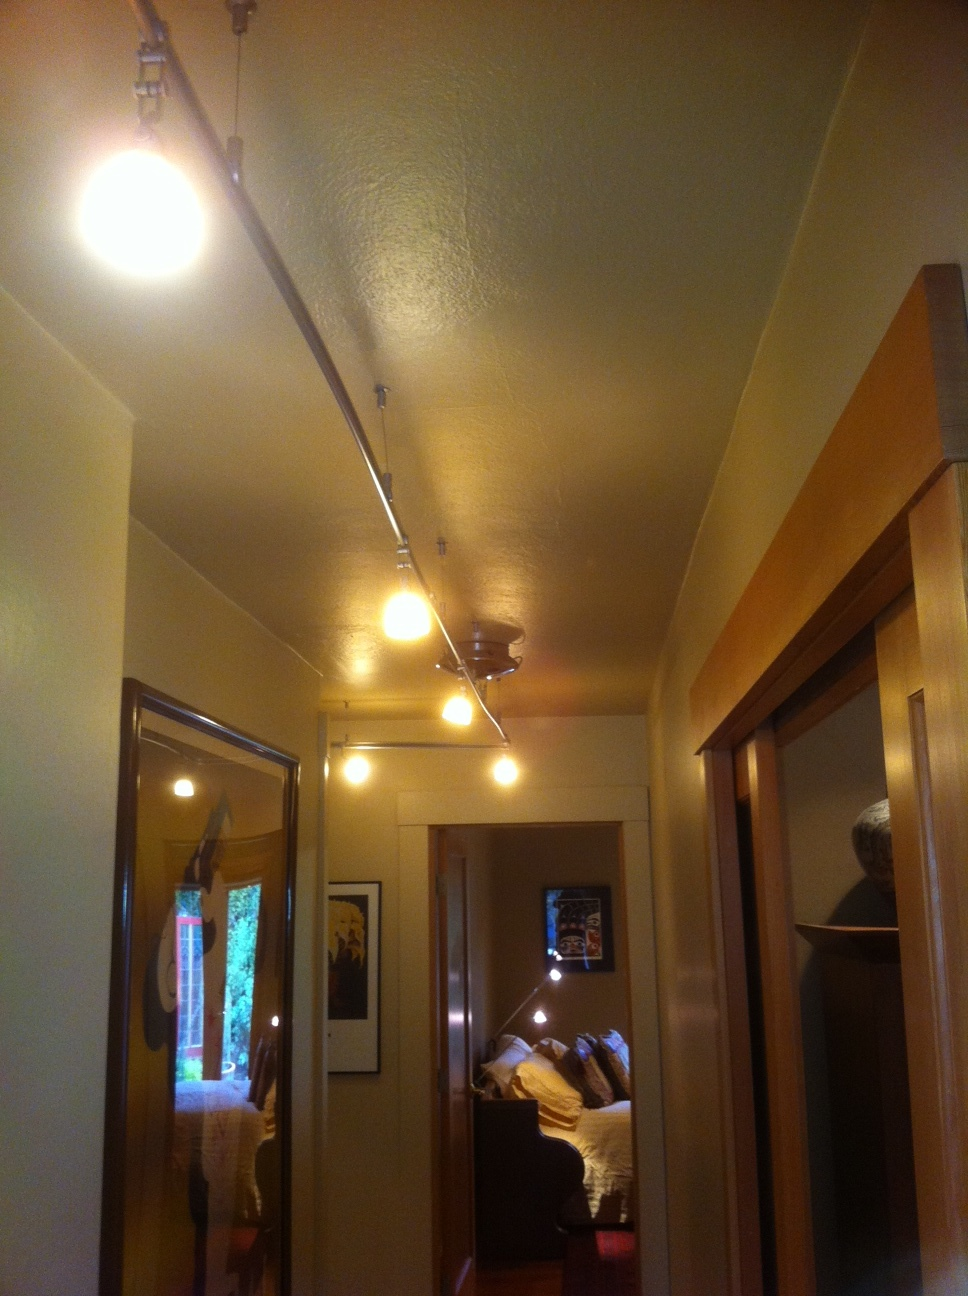 Try a string of lights down your hall to brighten up the space.